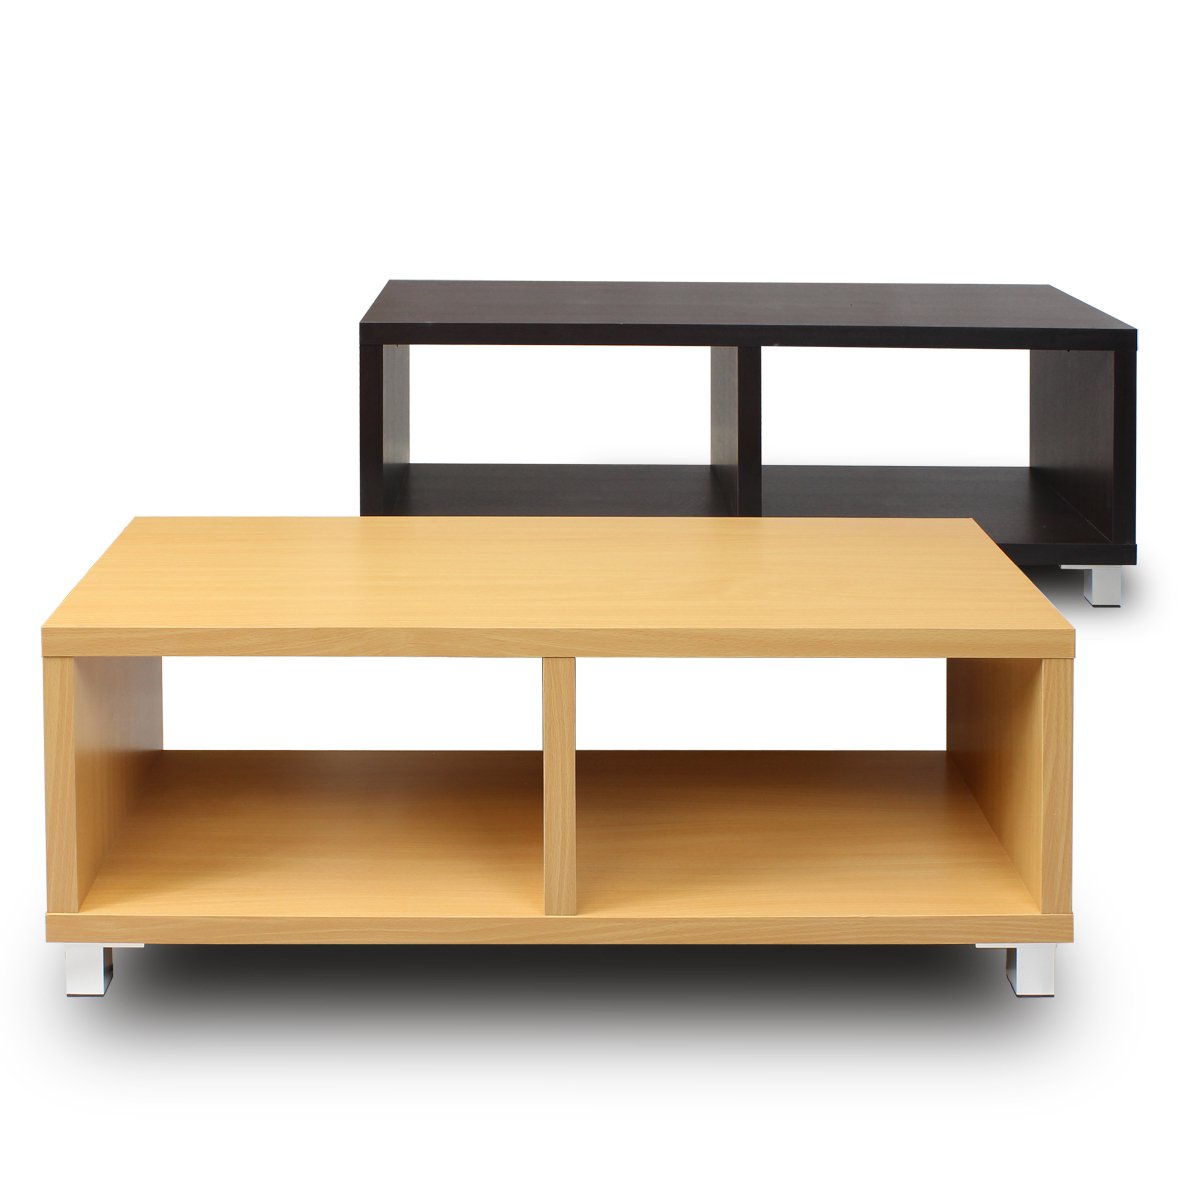 Shop Furinno Nihon Dual Functiona Contemporary Tv Stand Coffee Table Throughout Well Liked Tv Stand Coffee Table Sets (Gallery 19 of 20)